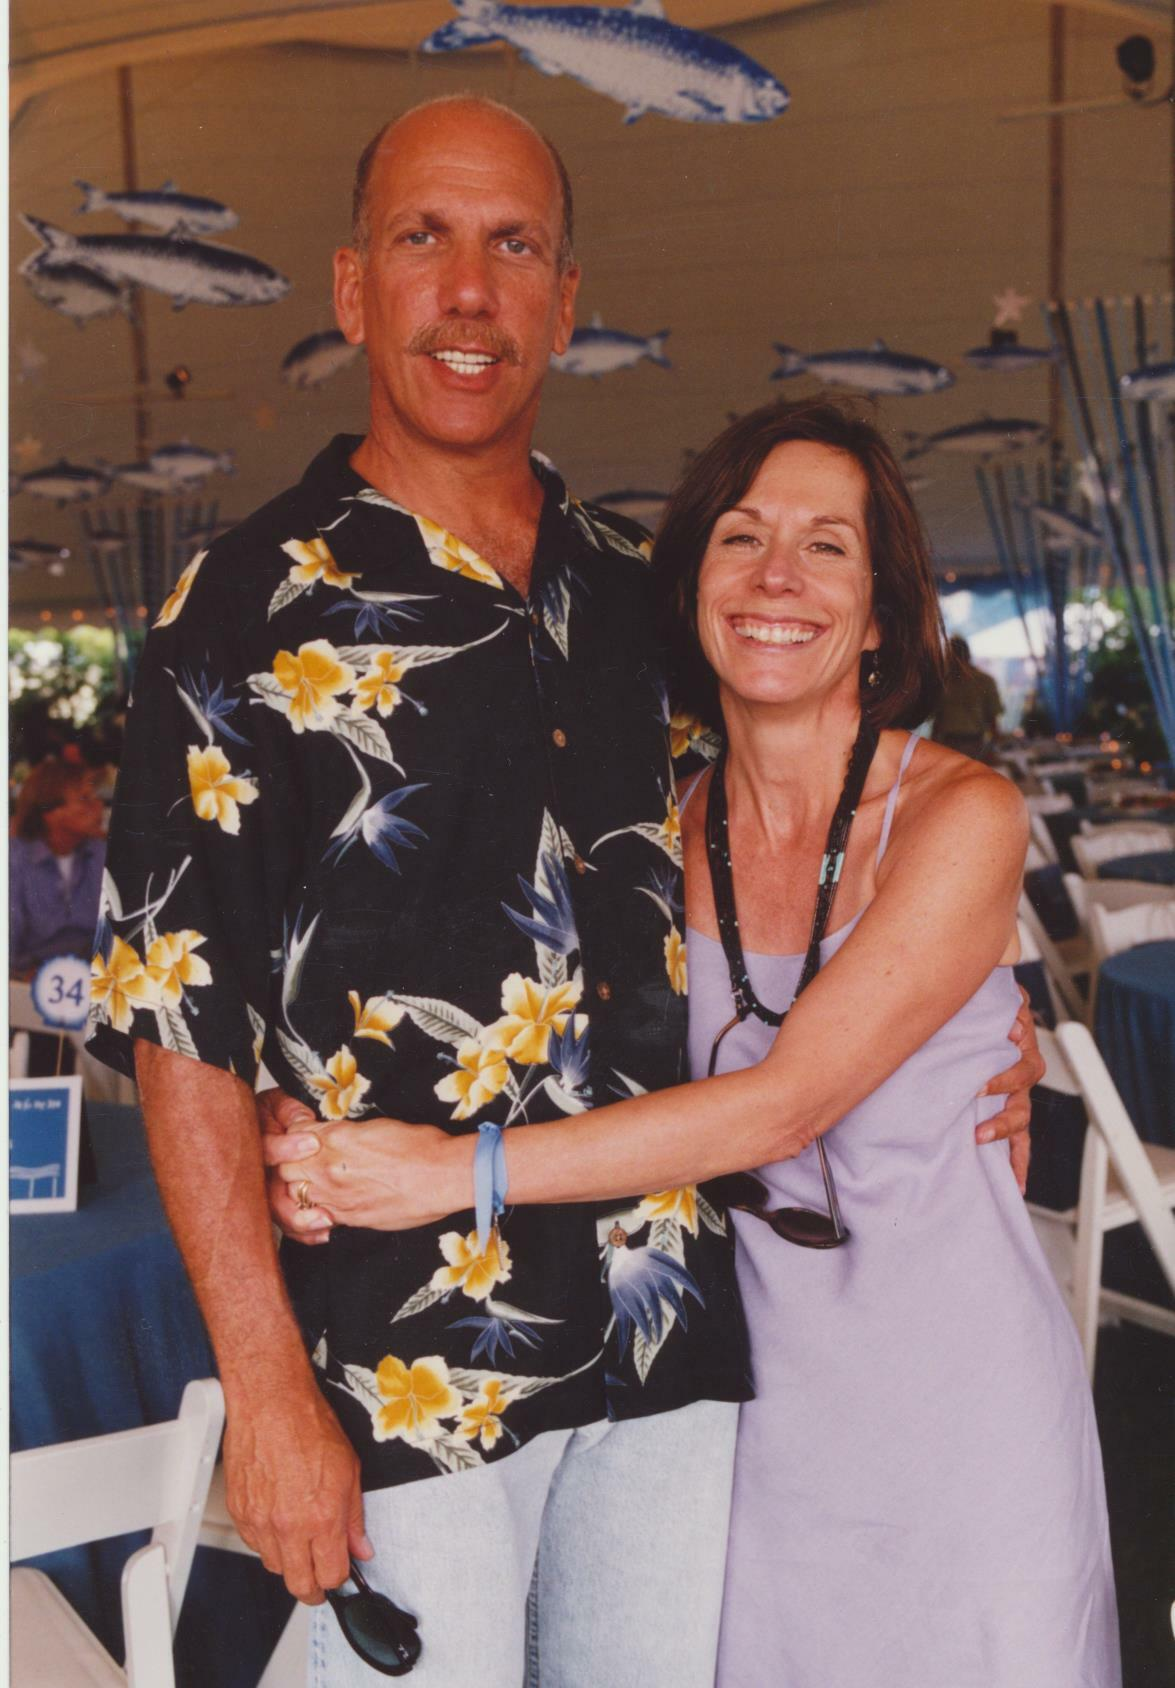 Robert F.X. and Laura Baudo Sillerman at an